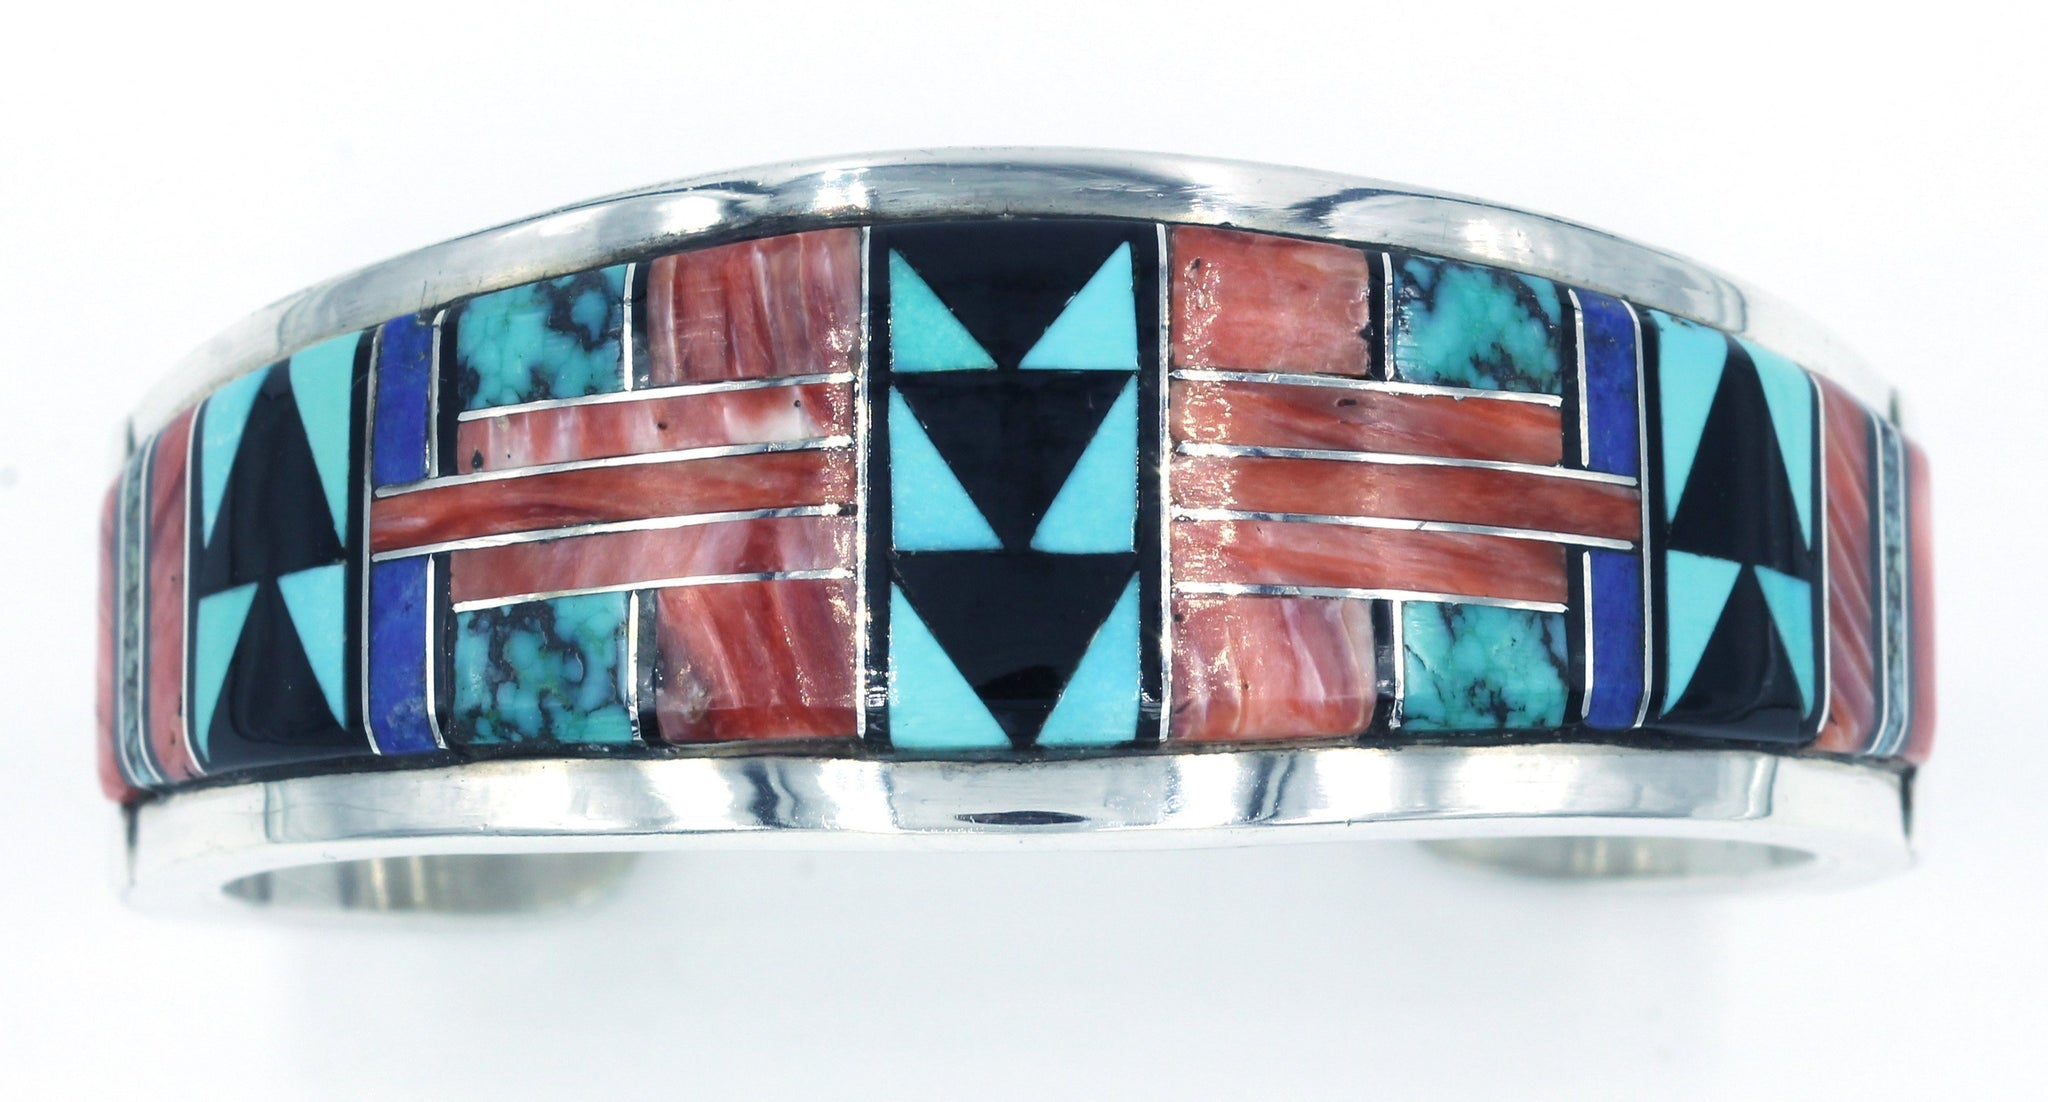 Vintage Native American Zuni Sterling Silver Inlaid Bracelet, SOLD